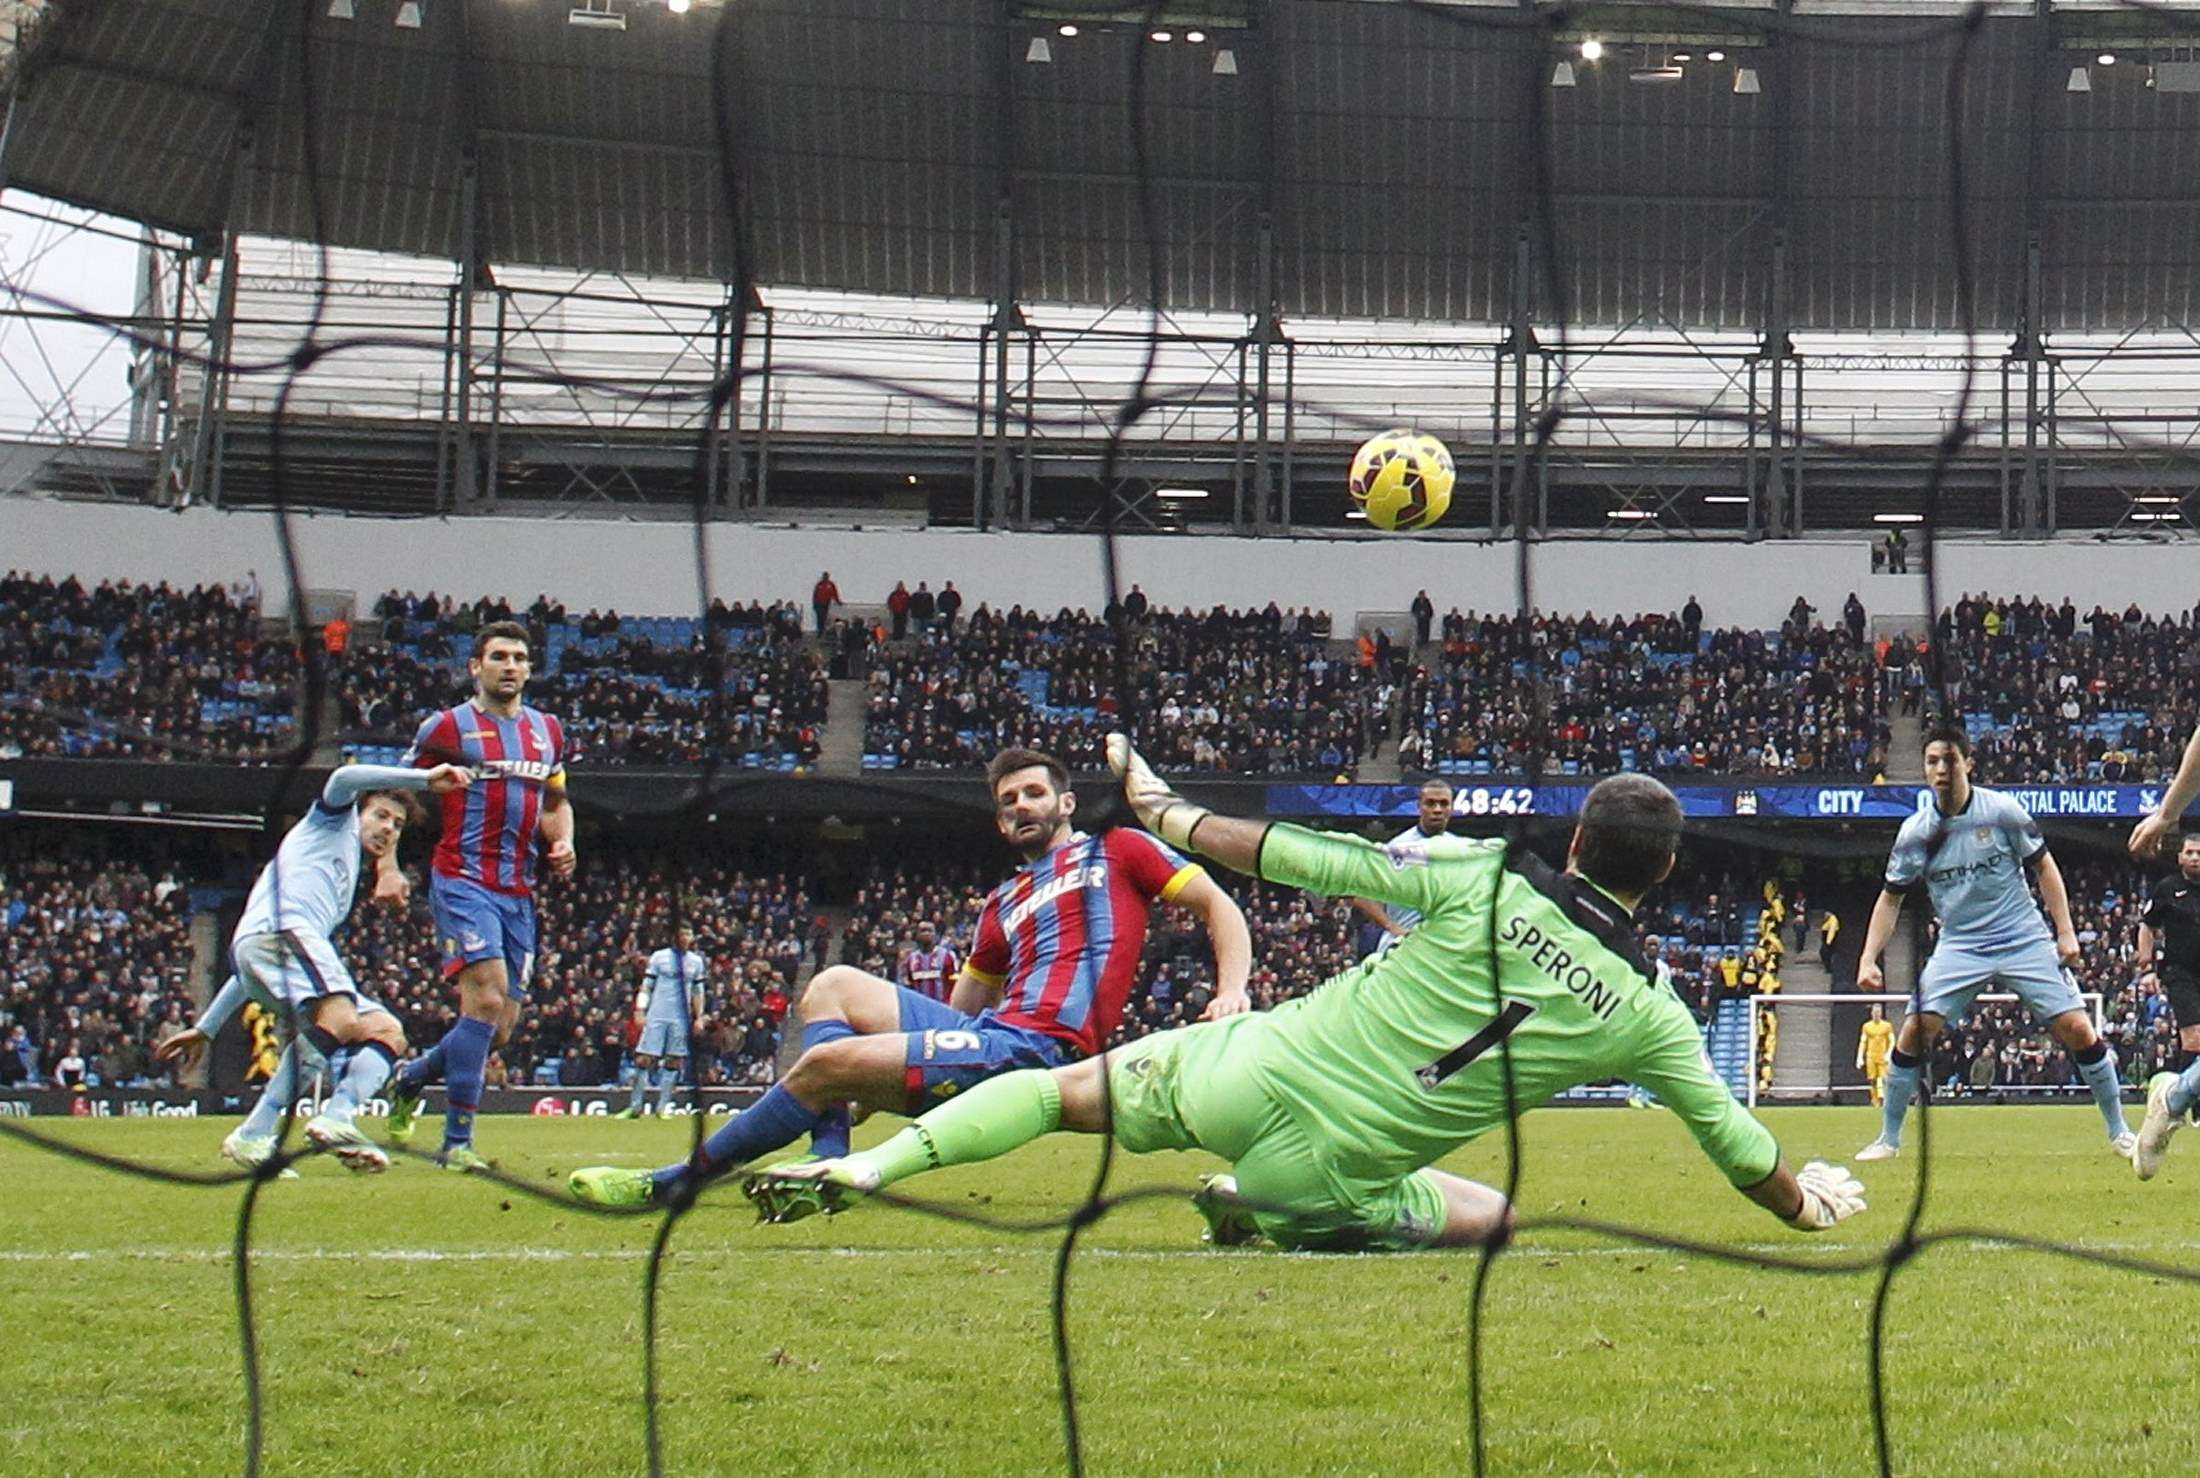 Manchester City's David Silva (L) shoots to score his first goal against Crystal Palace during their English Premier League soccer match at the Etihad Stadium in Manchester, northern England December 20, 2014. REUTERS/Phil Noble (BRITAIN - Tags: SOCCER SPORT) FOR EDITORIAL USE ONLY. NOT FOR SALE FOR MARKETING OR ADVERTISING CAMPAIGNS. EDITORIAL USE ONLY. NO USE WITH UNAUTHORIZED AUDIO, VIDEO, DATA, FIXTURE LISTS, CLUB/LEAGUE LOGOS OR 'LIVE' SERVICES. ONLINE IN-MATCH USE LIMITED TO 45 IMAGES, NO VIDEO EMULATION. NO USE IN BETTING, GAMES OR SINGLE CLUB/LEAGUE/PLAYER PUBLICATIONS. Foto: PHIL NOBLE/REUTERS